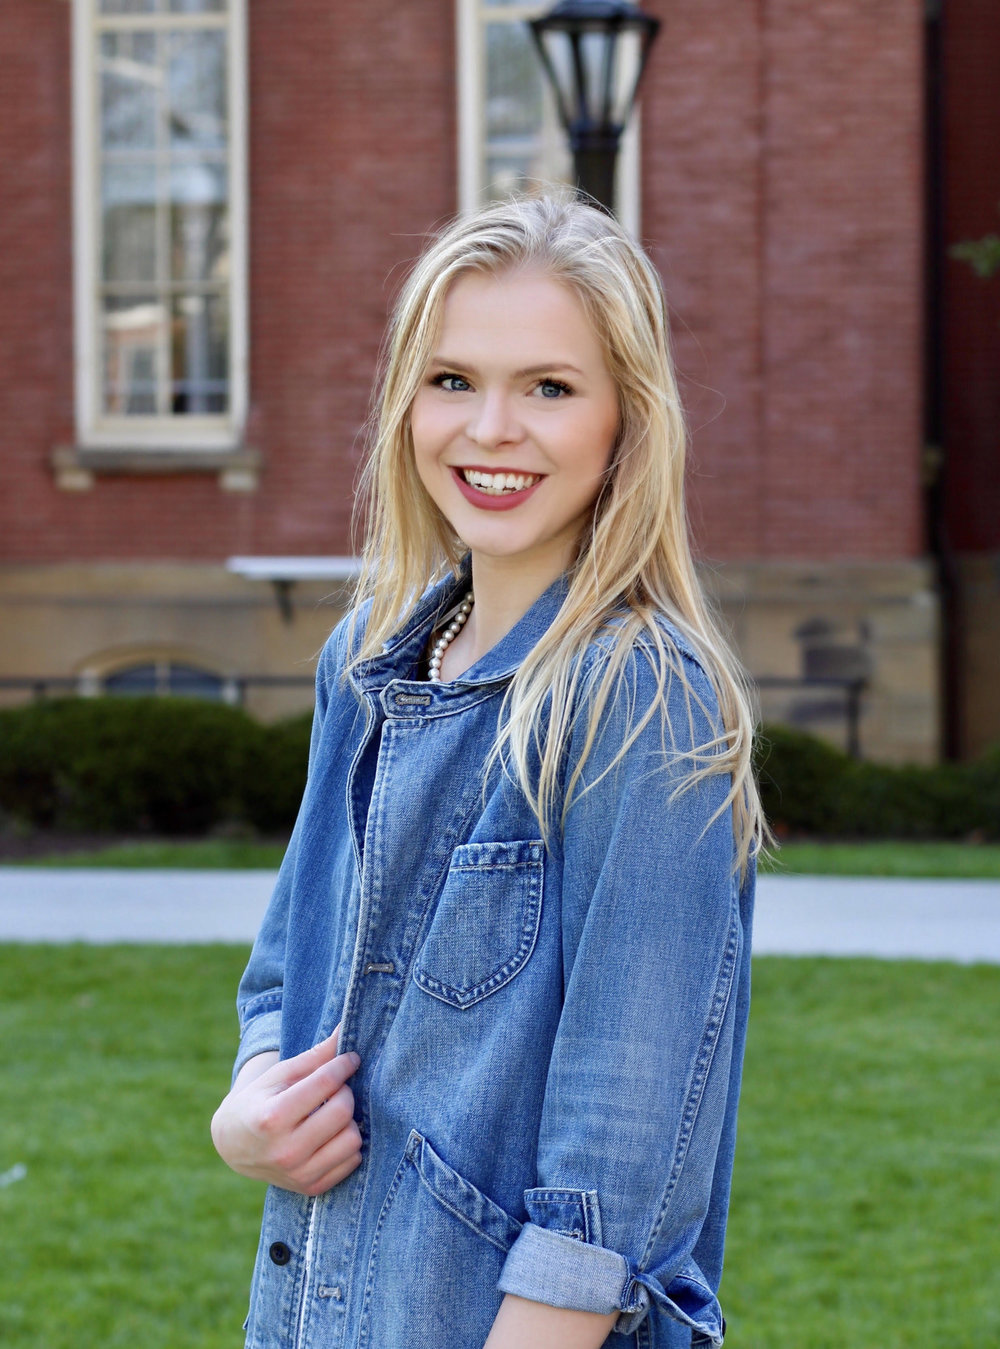 Caroline Leadmon - Caroline Leadmon is currently a WVU Biochemistry student from Hurricane, WV. Caroline is the president of the WVU Figure Skating Club and helped to found WVU's first synchronized skating team. Caroline is a United States Figure Skating Association Quadruple Gold Medalist in Moves in the Field, Pattern Dance, Solo Free Dance, and Solo Pattern Dance. She has competed ice dance in four national championships and the U.S. Challenge Skate. While Caroline grew up skating out of Charleston, WV, she also trained weekends and summers in Cleveland, Ohio and Novi, Michigan. Caroline is a member of the Professional Skaters Association and currently coaches Learn-To-Skate and Mountain State Synchro here in Morgantown. She specializes in Moves in the Field and Ice Dance, however can teach up to juvenile freestyle.Contact: cel0002@mix.wvu.eduLesson rate: $20 per 30 minutes